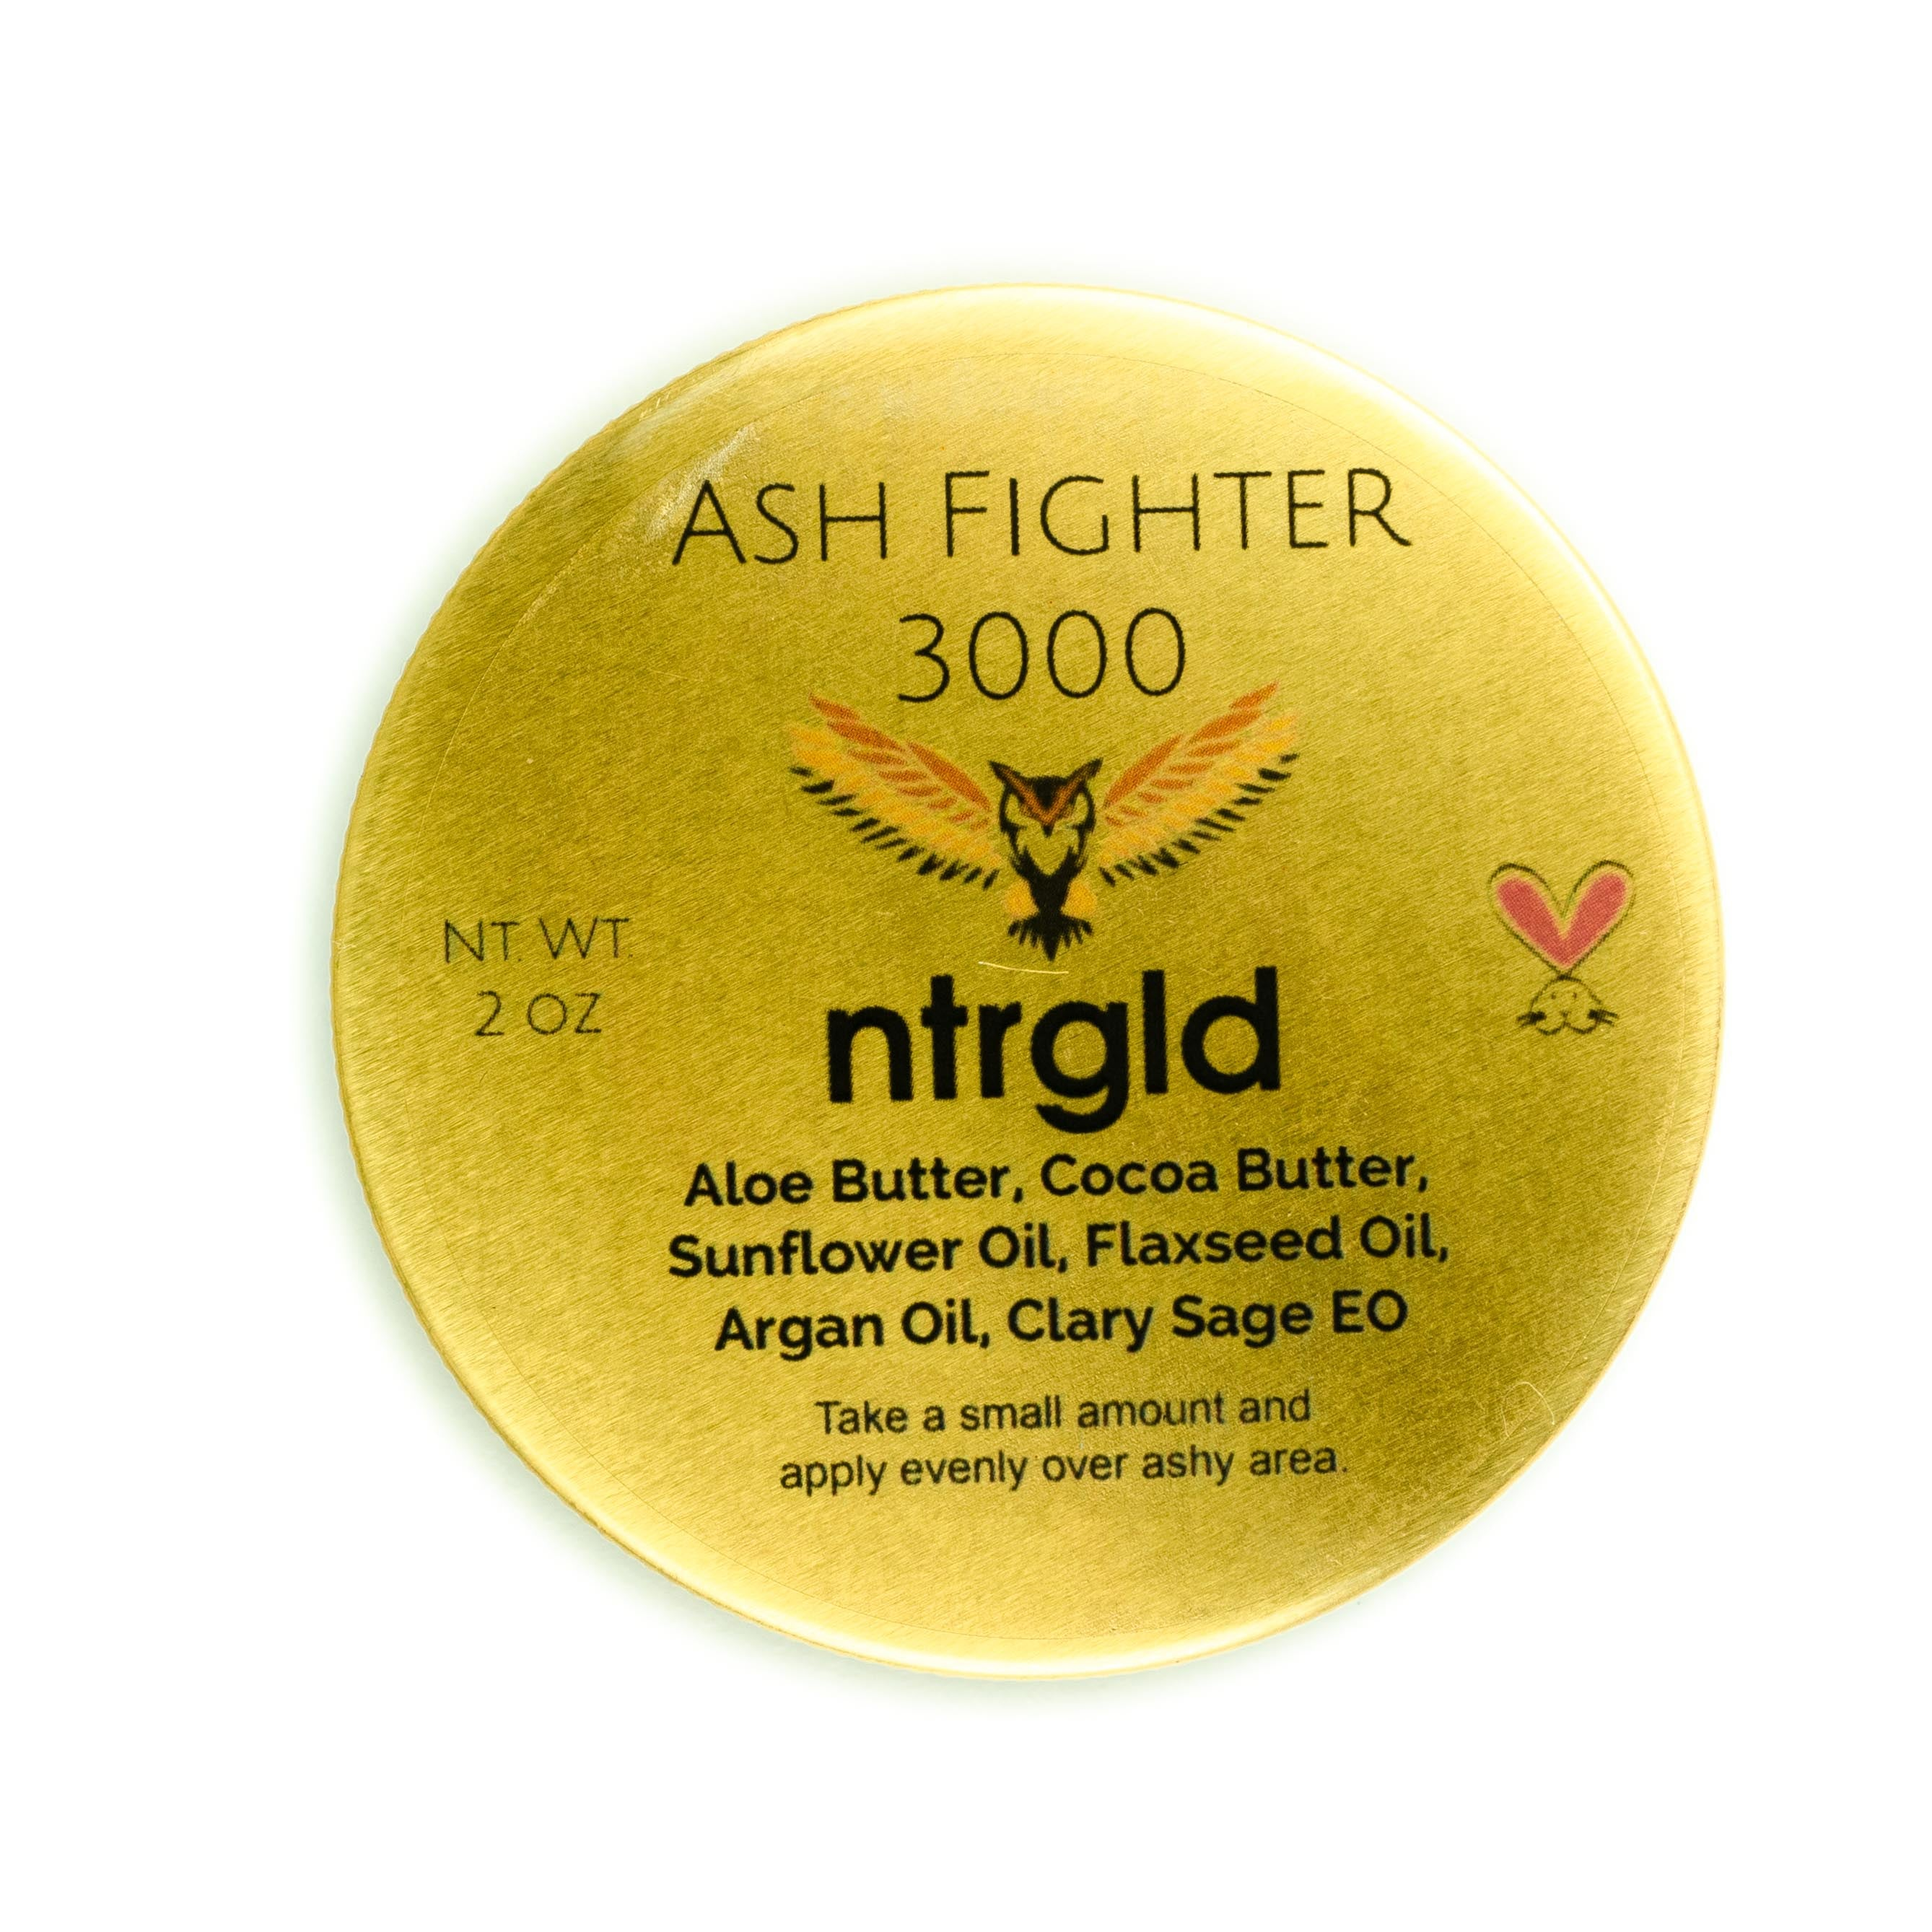 Ash Fighter 3000 - The Ultimate Gift For Your Ashy Friend - Neter Gold